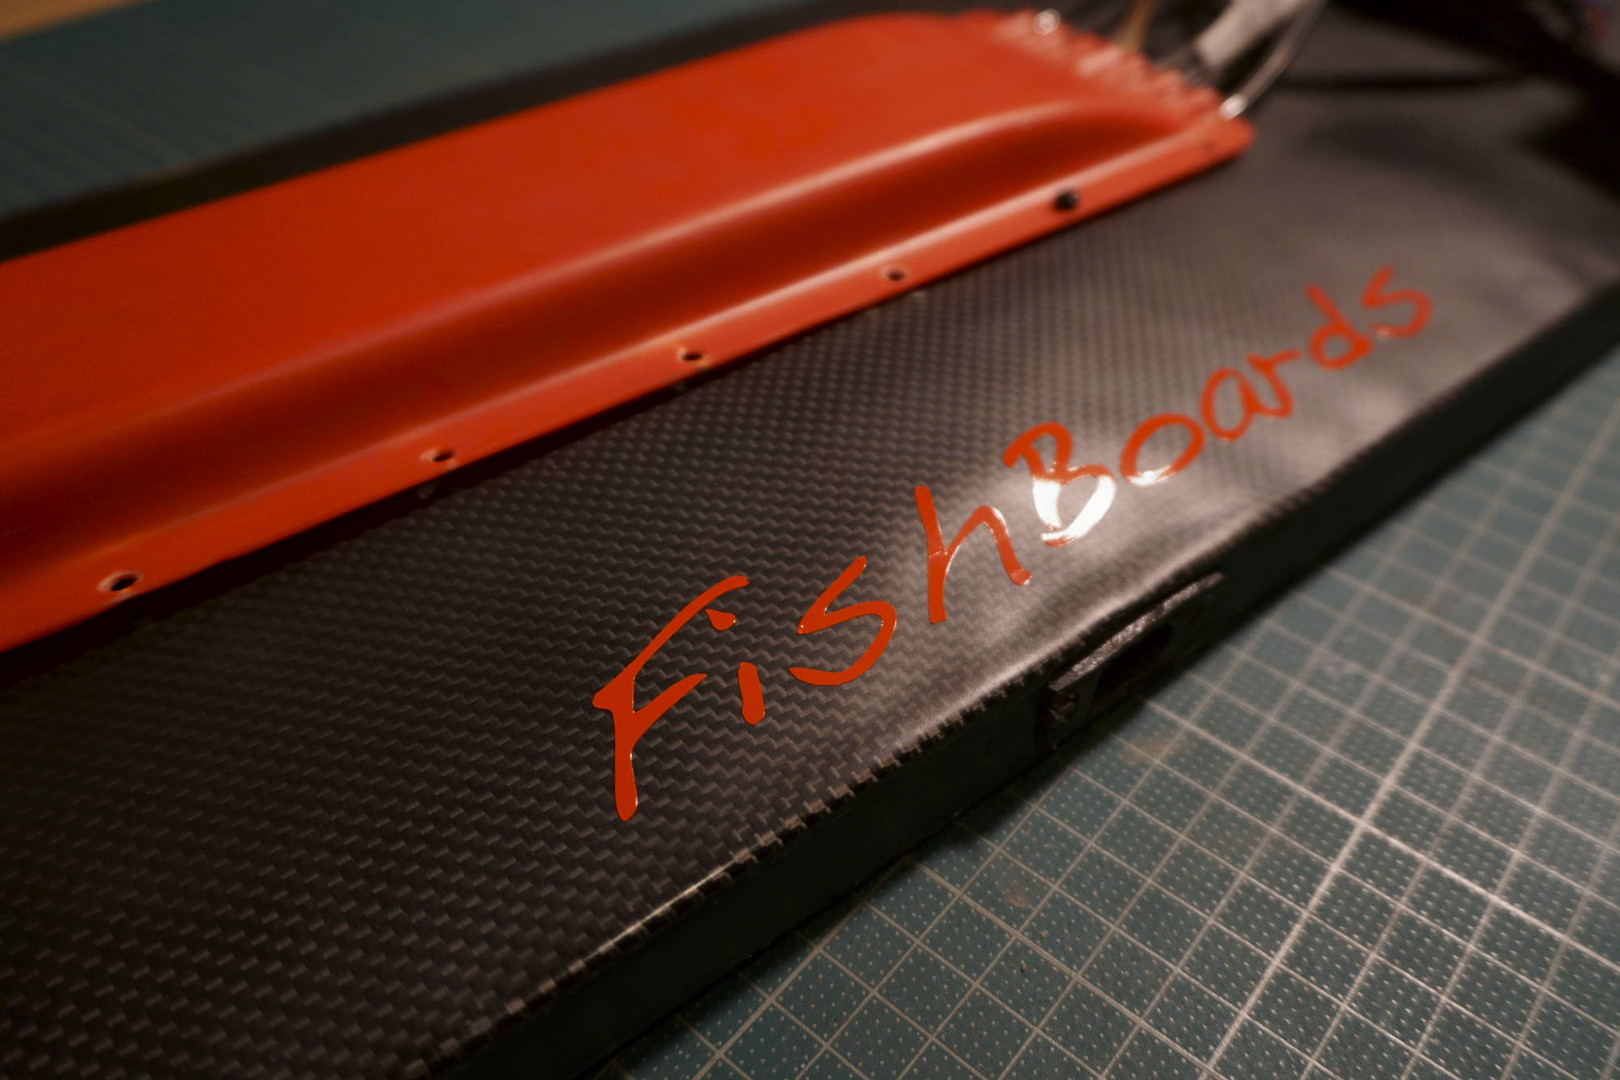 My fishboards logo on the board